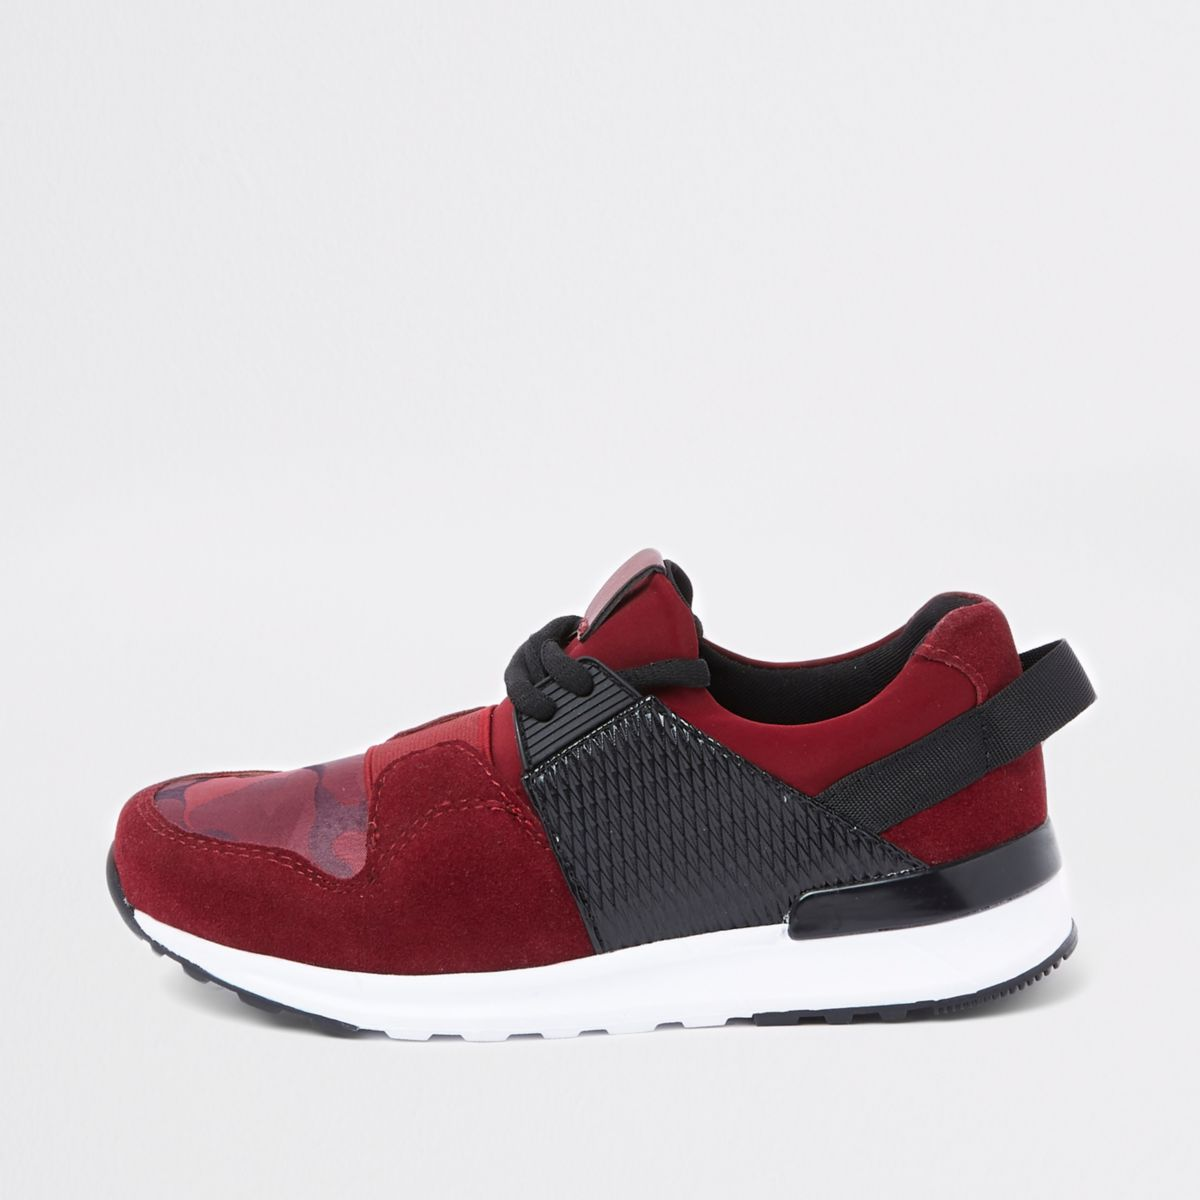 Boys dark red camo insert runner sneakers